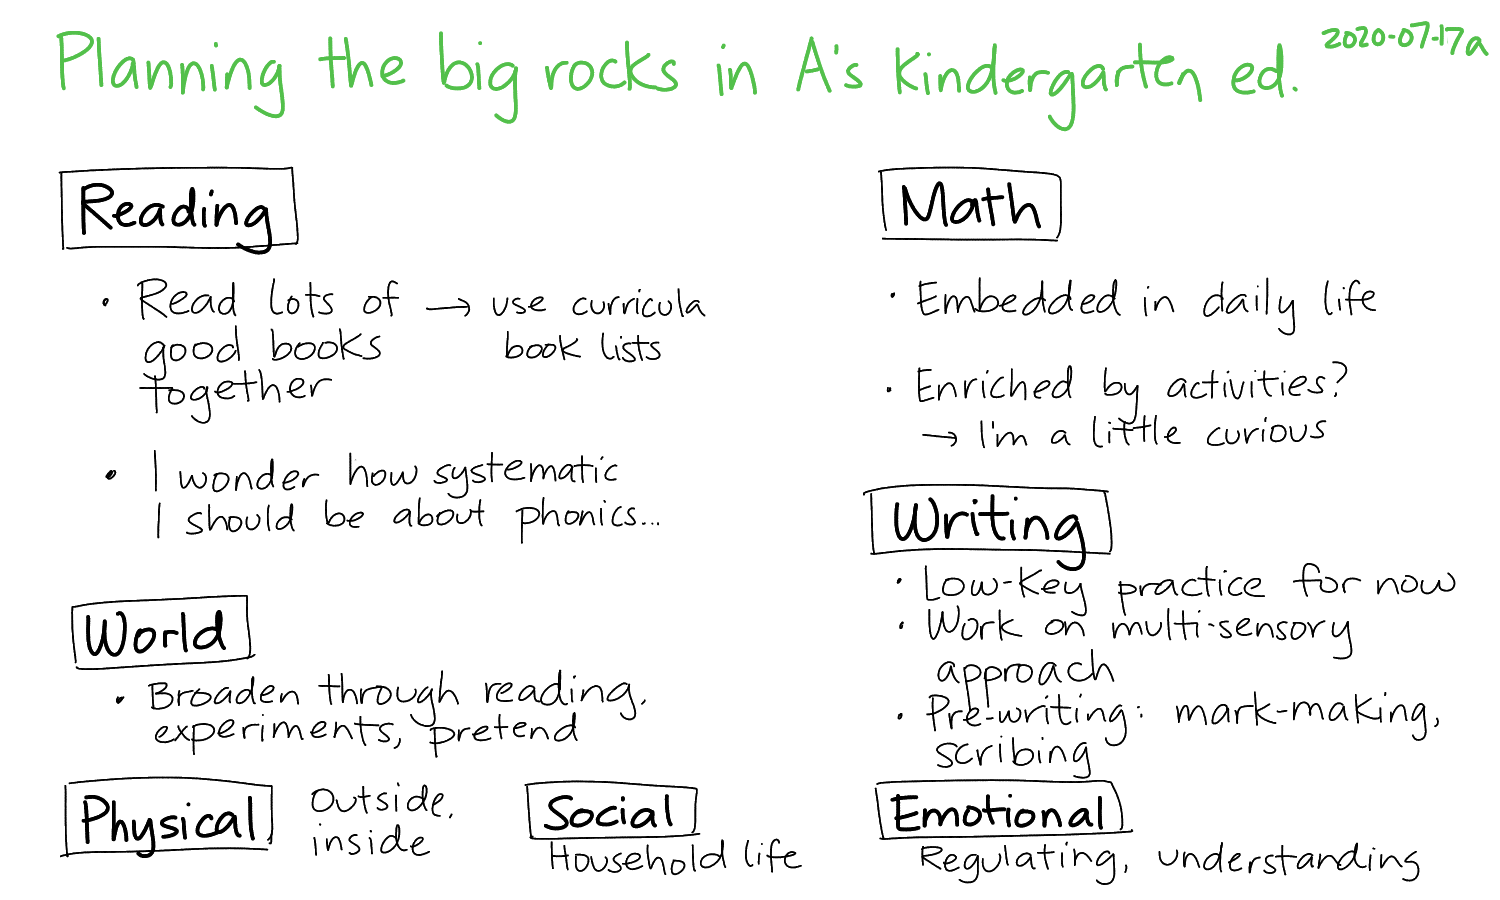 2020-07-17a Planning the big rocks in A-'s kindergarten education #parenting #education #kindergarten.png